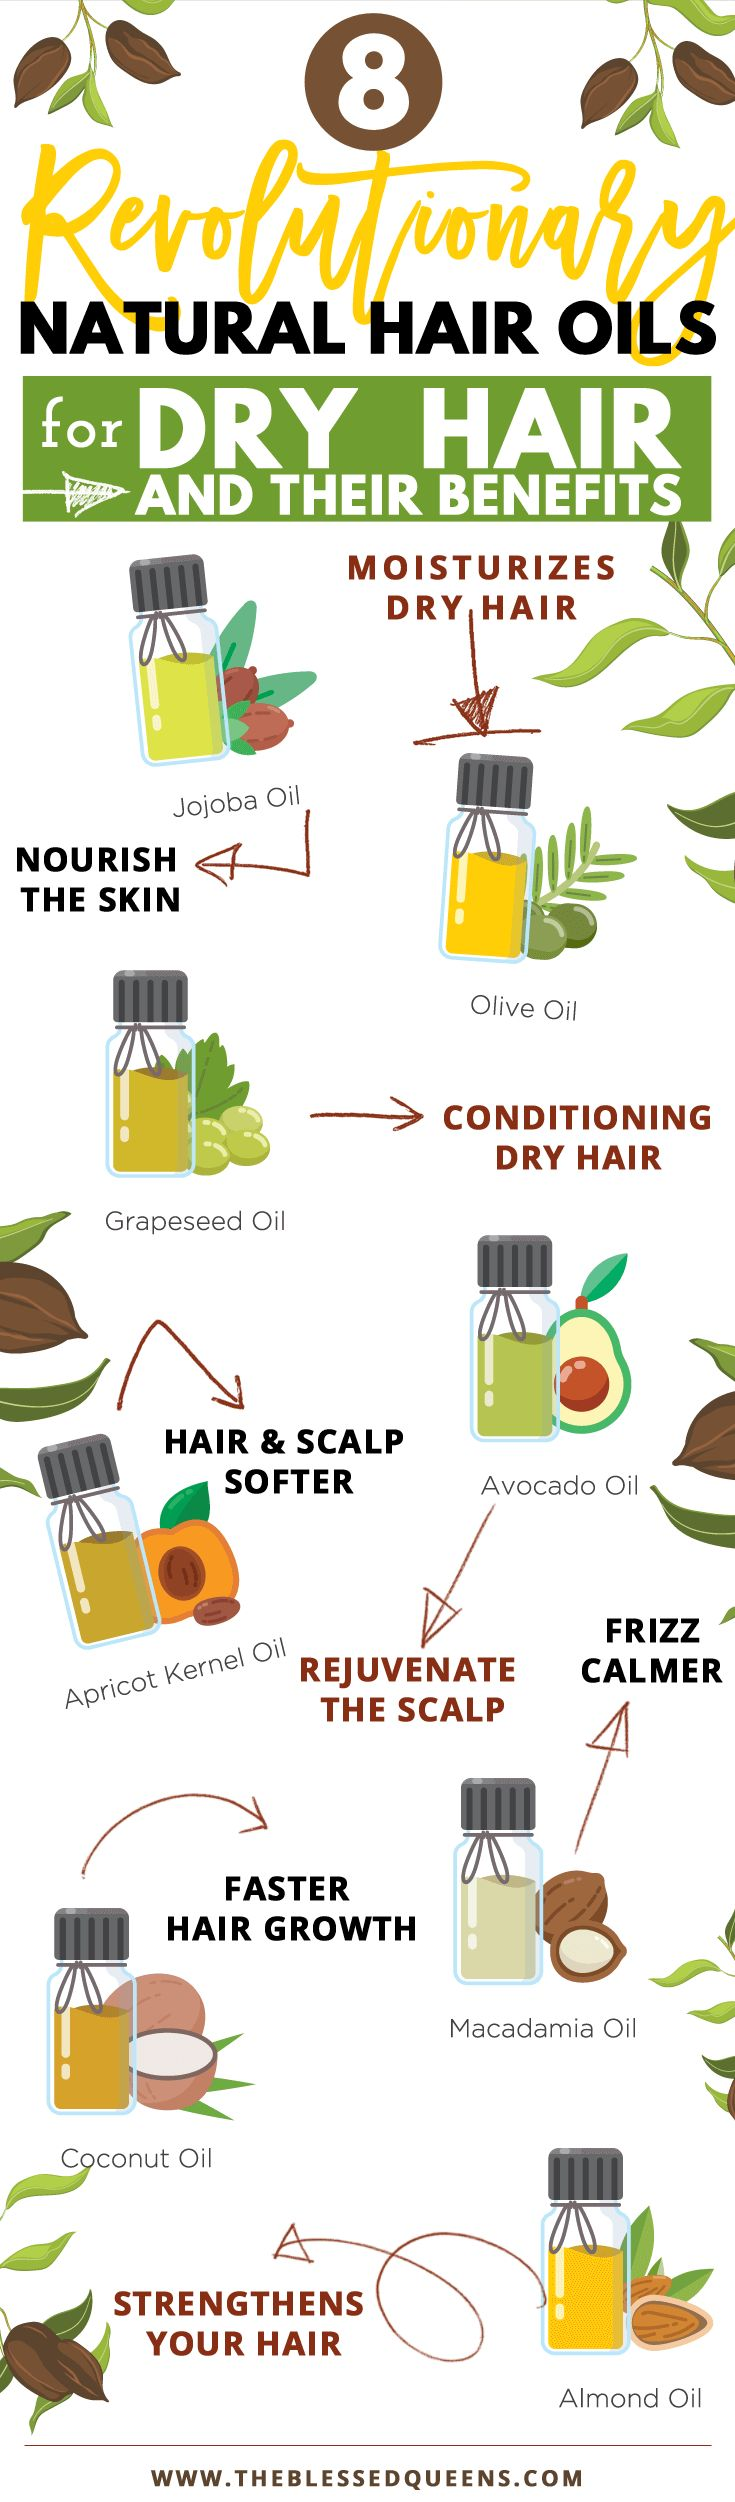 8 Revolutionary Natural hair oils for dry hair and their benefits!